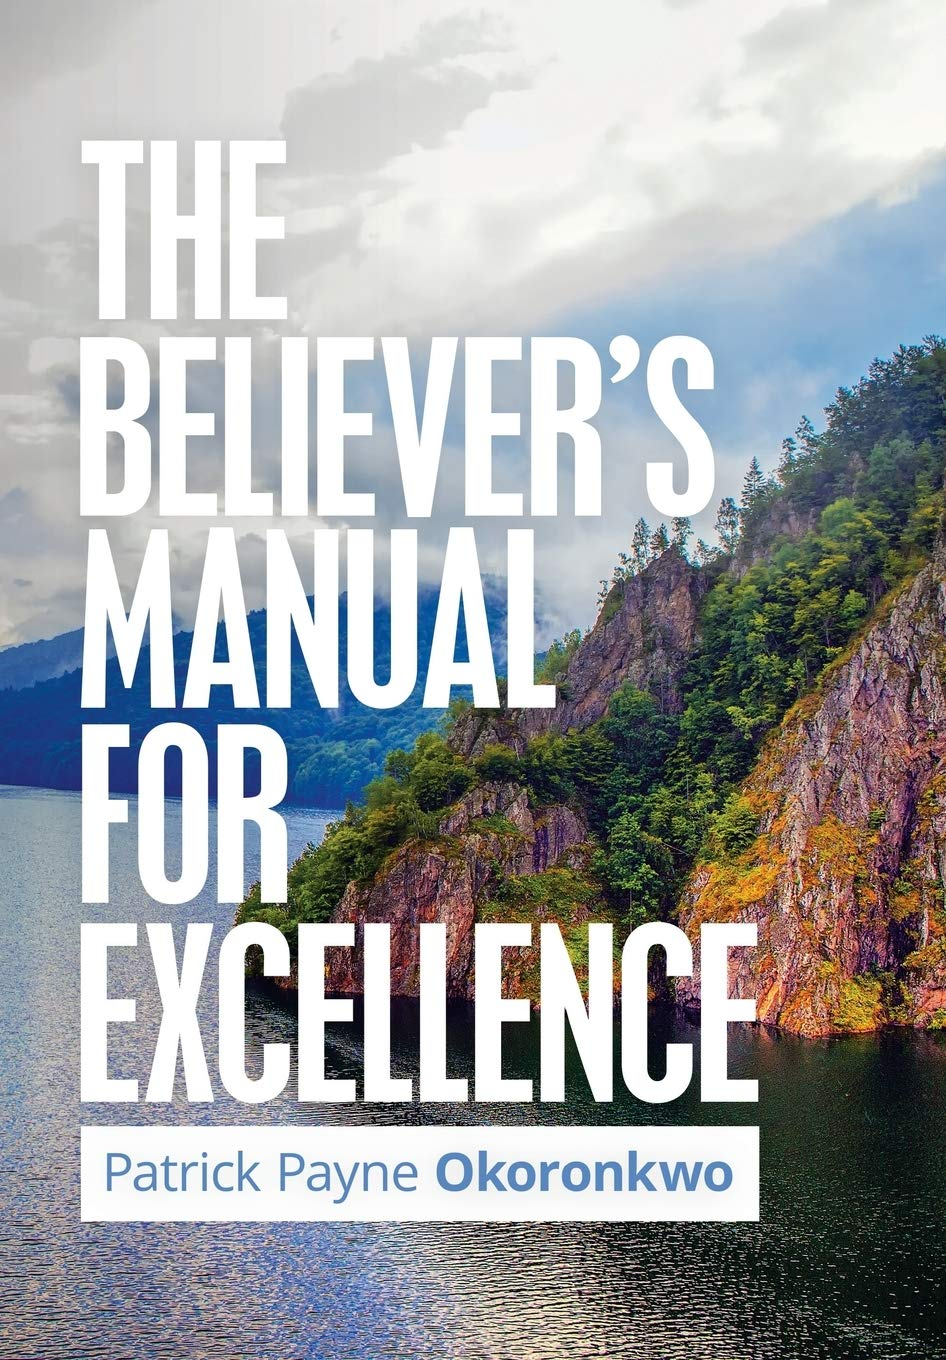 The Believer's Manual for Excellence: Patrick Payne